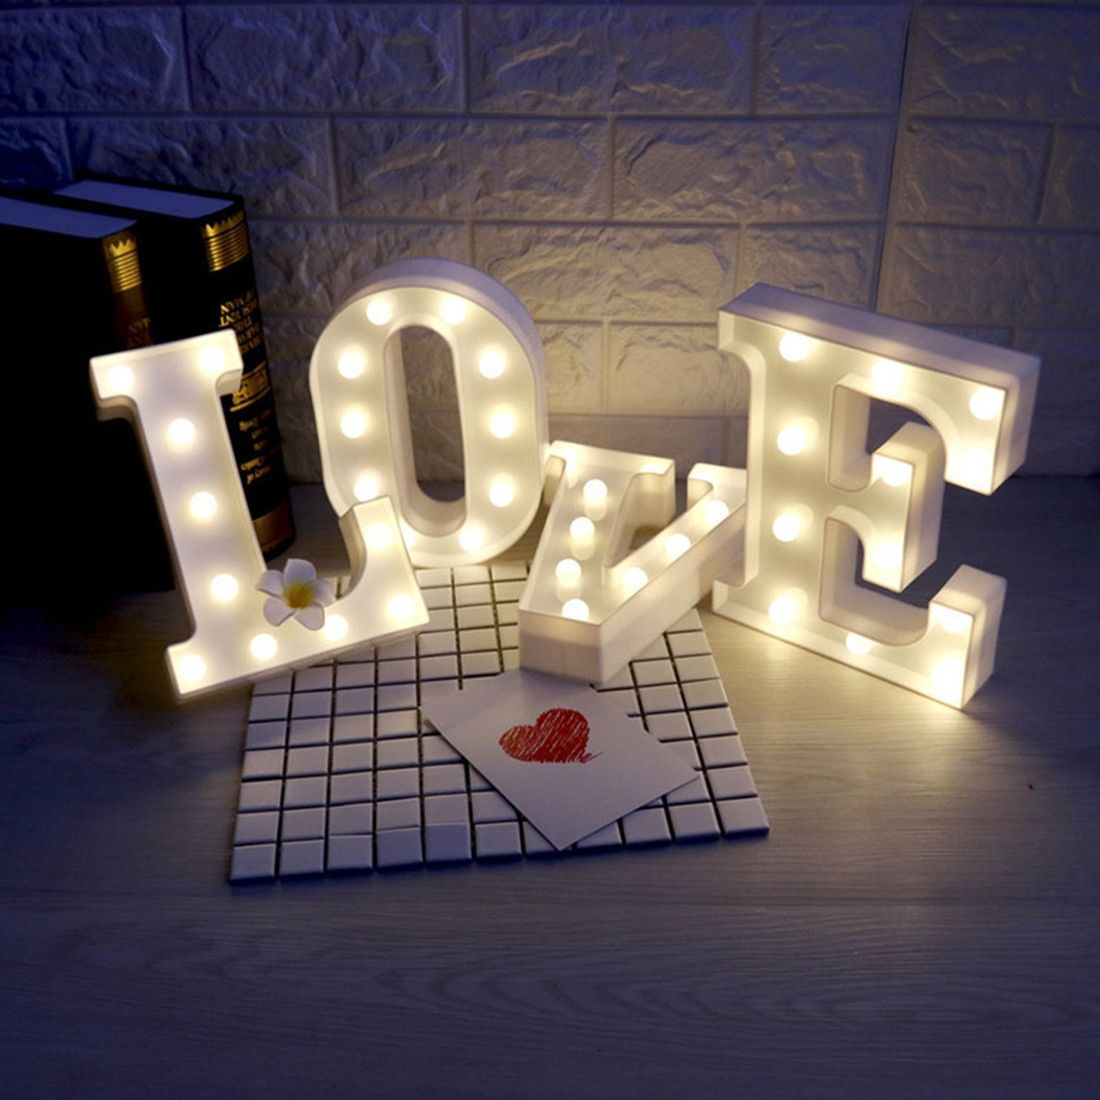 Hot Sale 26 Letters White Led Night Light Marquee Sign Alphabet Lamp For Birthday Wedding Party